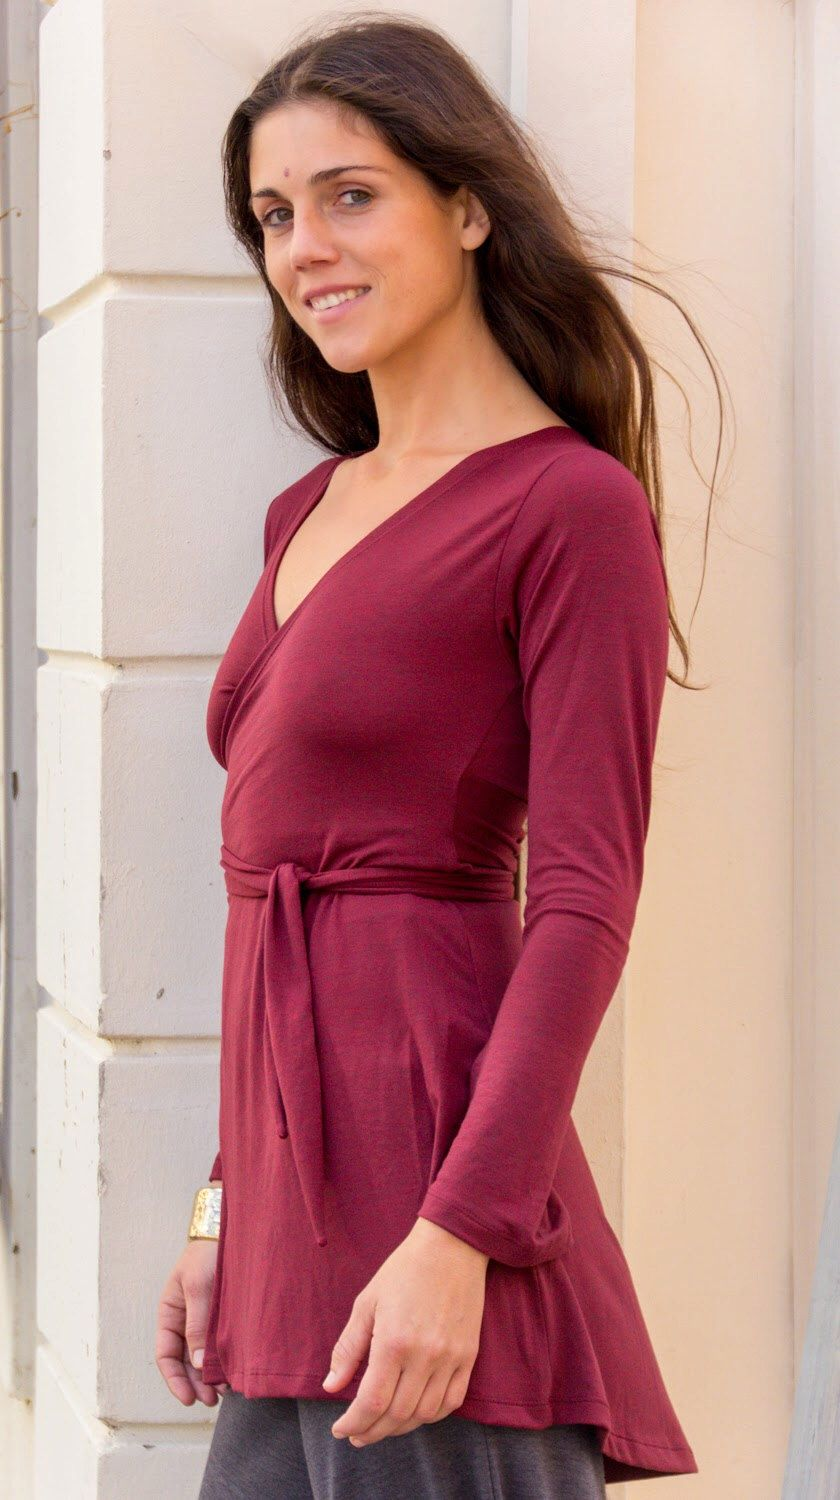 GIFT Bordeaux Womens Winter Wrap Top Burgundy Women Winter Tunic with V neck V Top Burgundy Top Gray Tunic by AlexWomenCreations on Etsy https://www.etsy.com/listing/210852987/gift-bordeaux-womens-winter-wrap-top